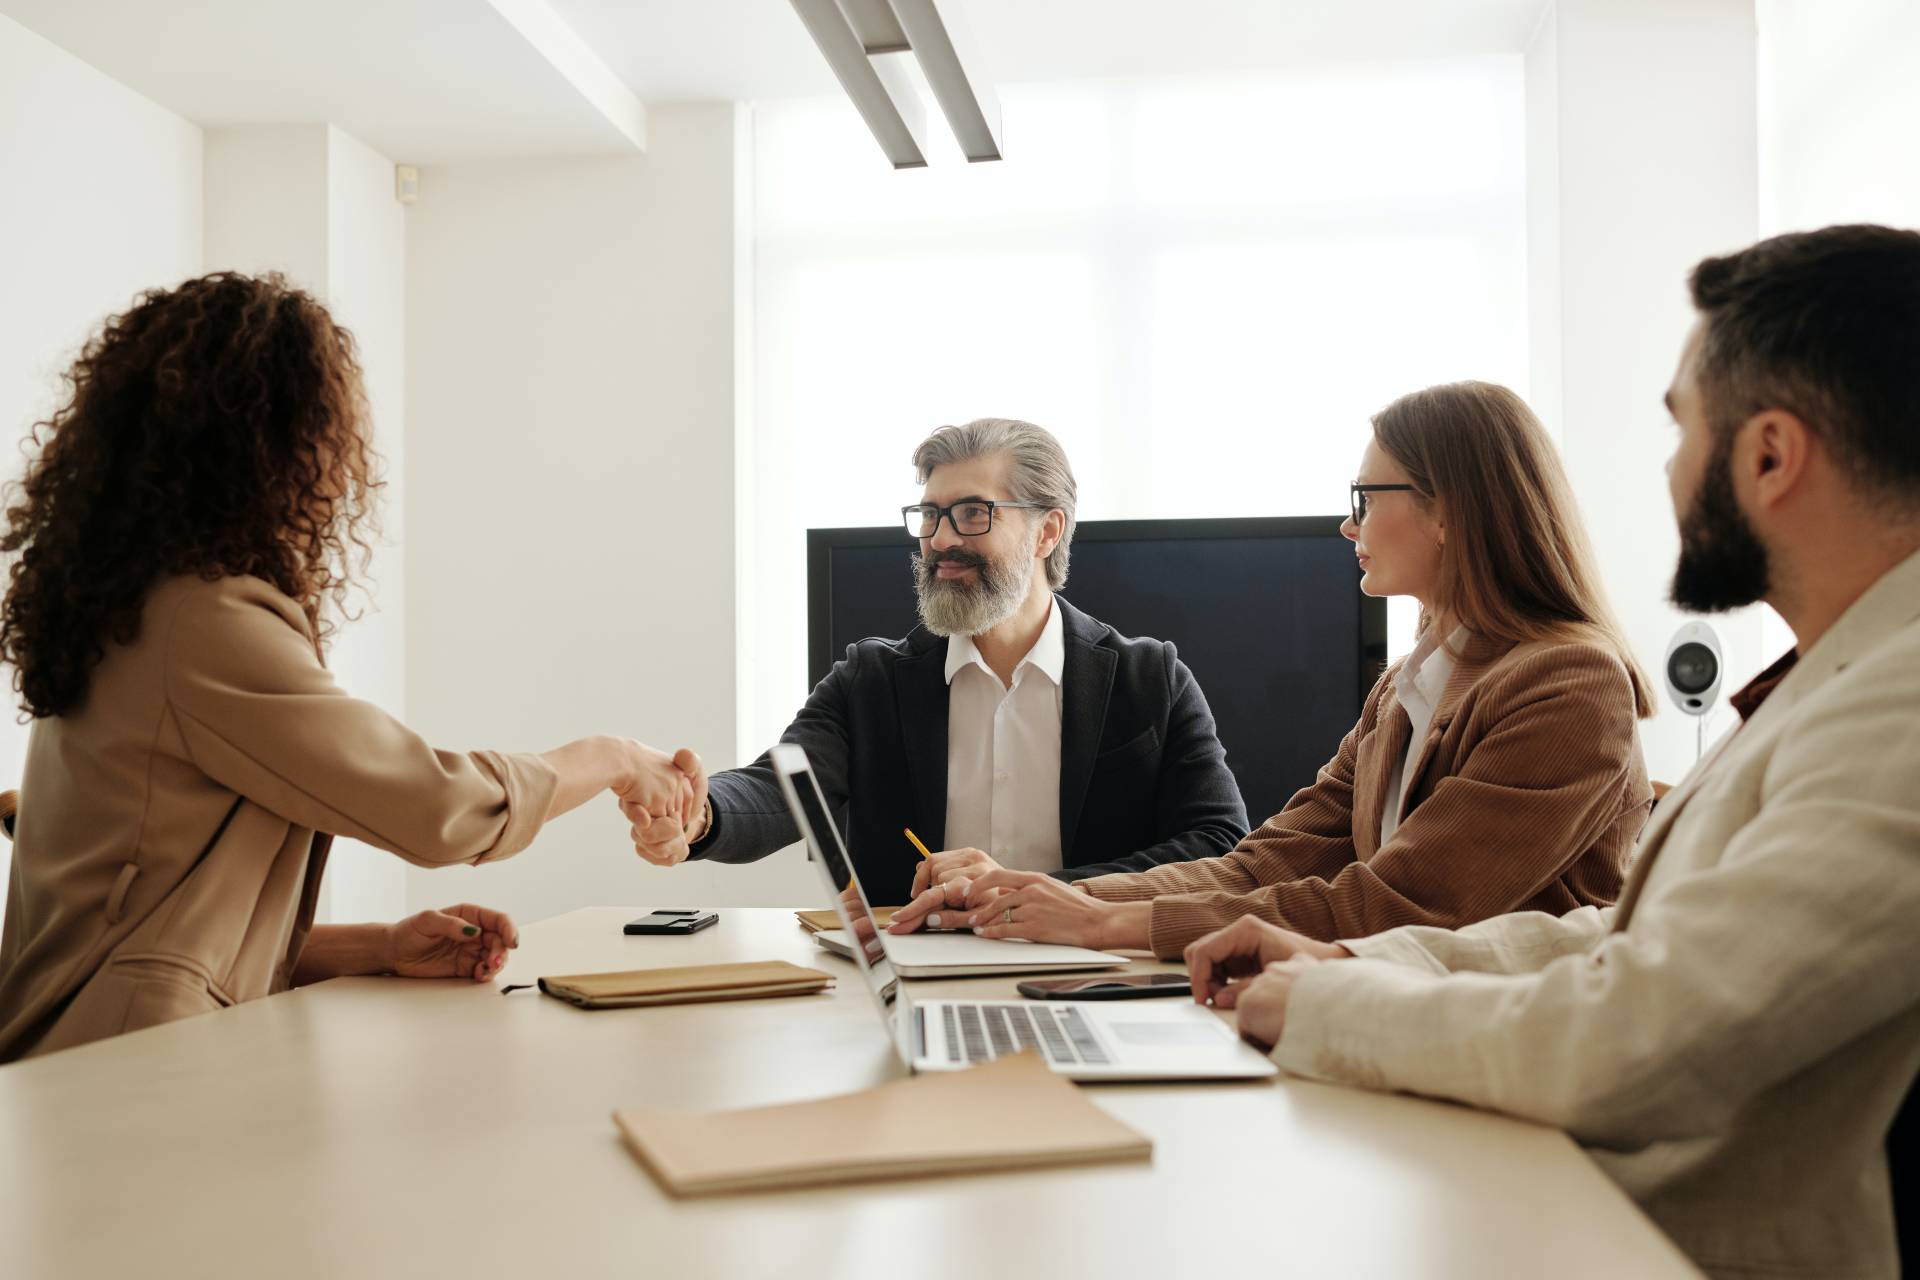 In a Post-Covid Hiring Spree? 4 Tips to Smooth the Onboarding Process